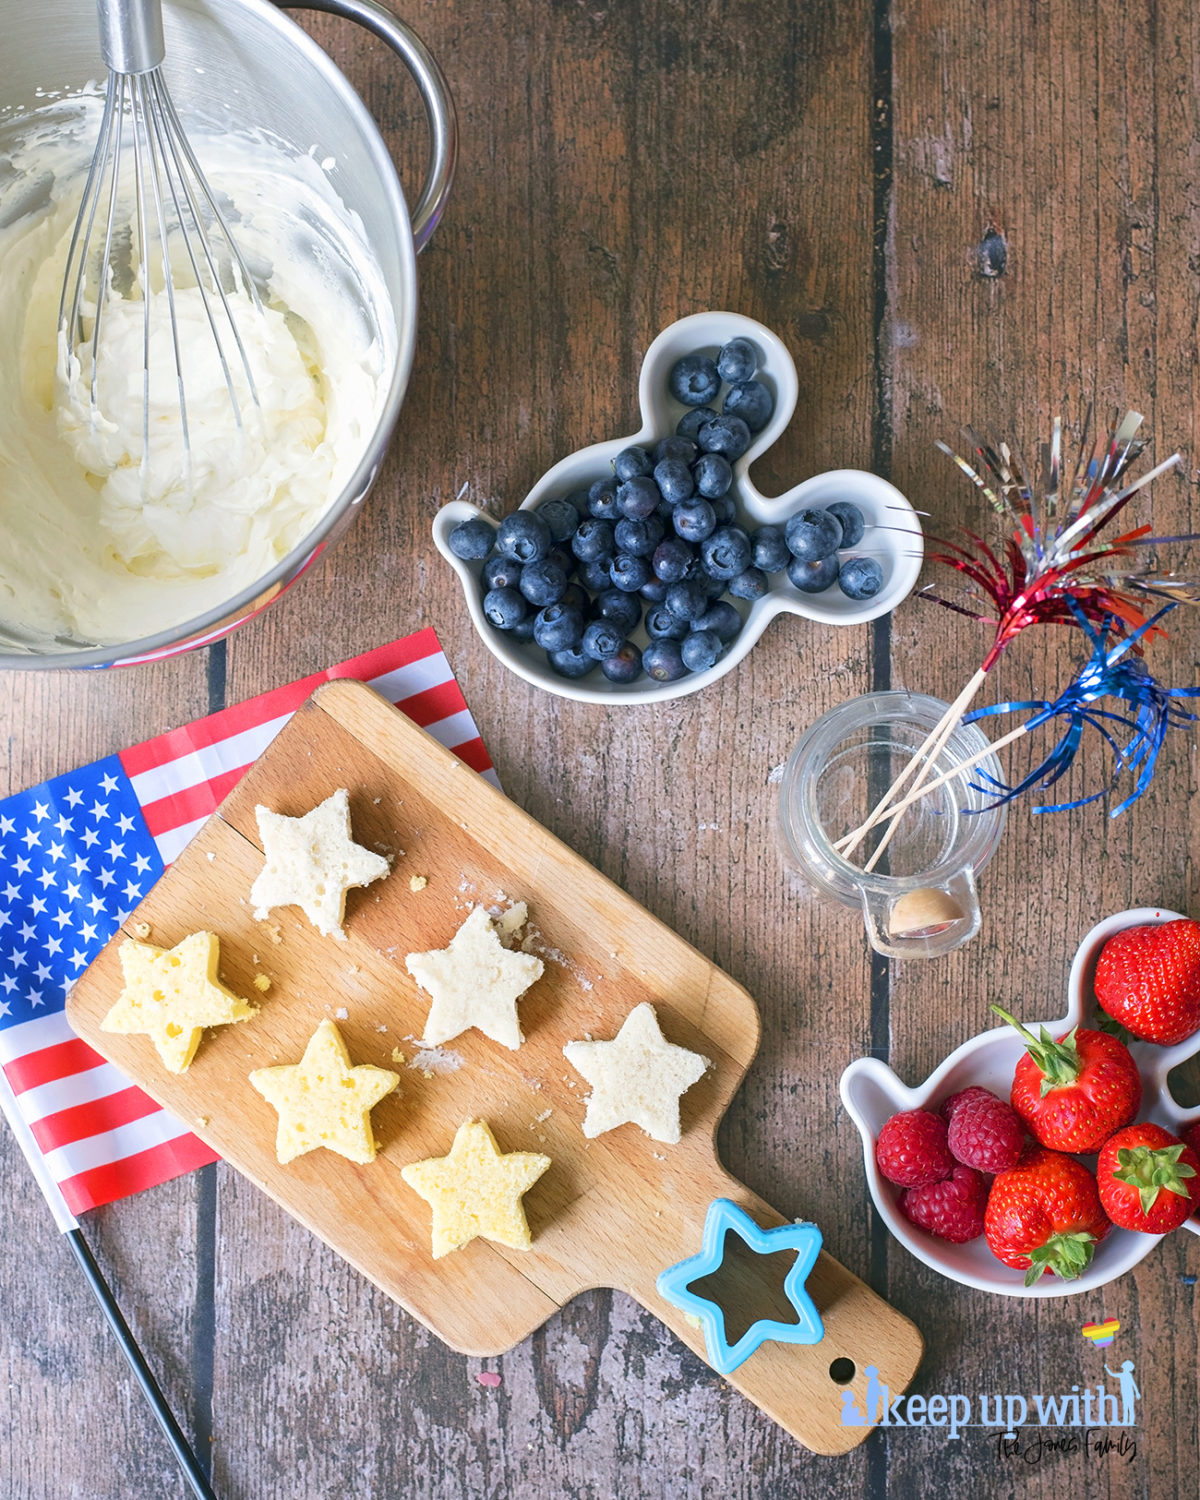 Image shows the ingredients needed to make 4th July Strawberry Cake Jar desserts, on top of a dark wooden tabletop. Strawberries, whipped cream, angel cake, and blueberries. Image by Sara-Jayne Jones of Keep Up With The Jones Family.